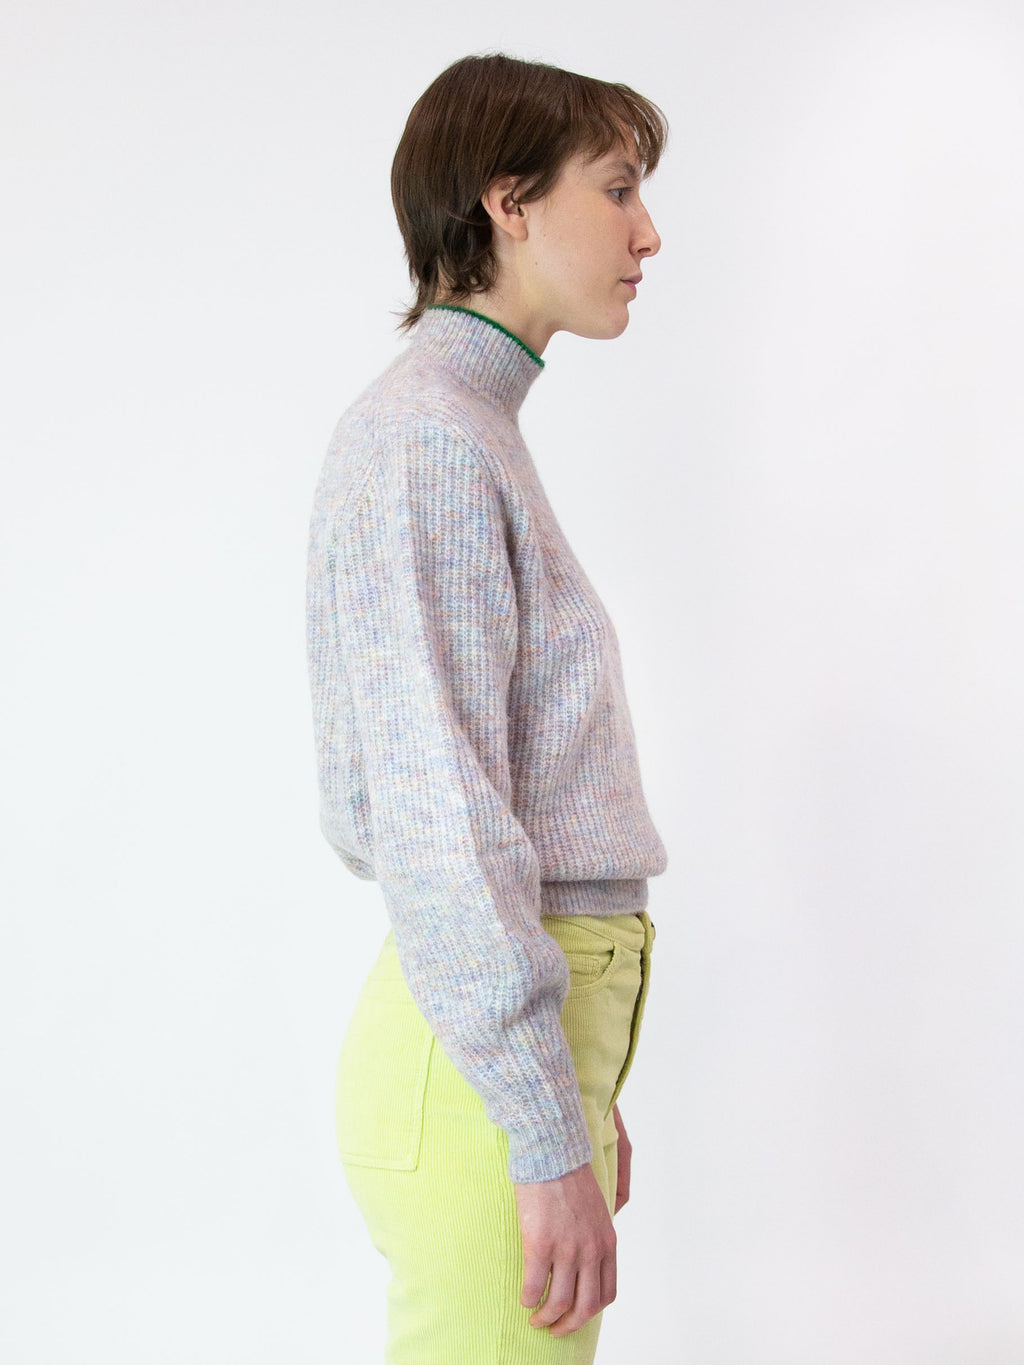 PALOMA WOOL Himalaya Turtleneck Knit - Off White